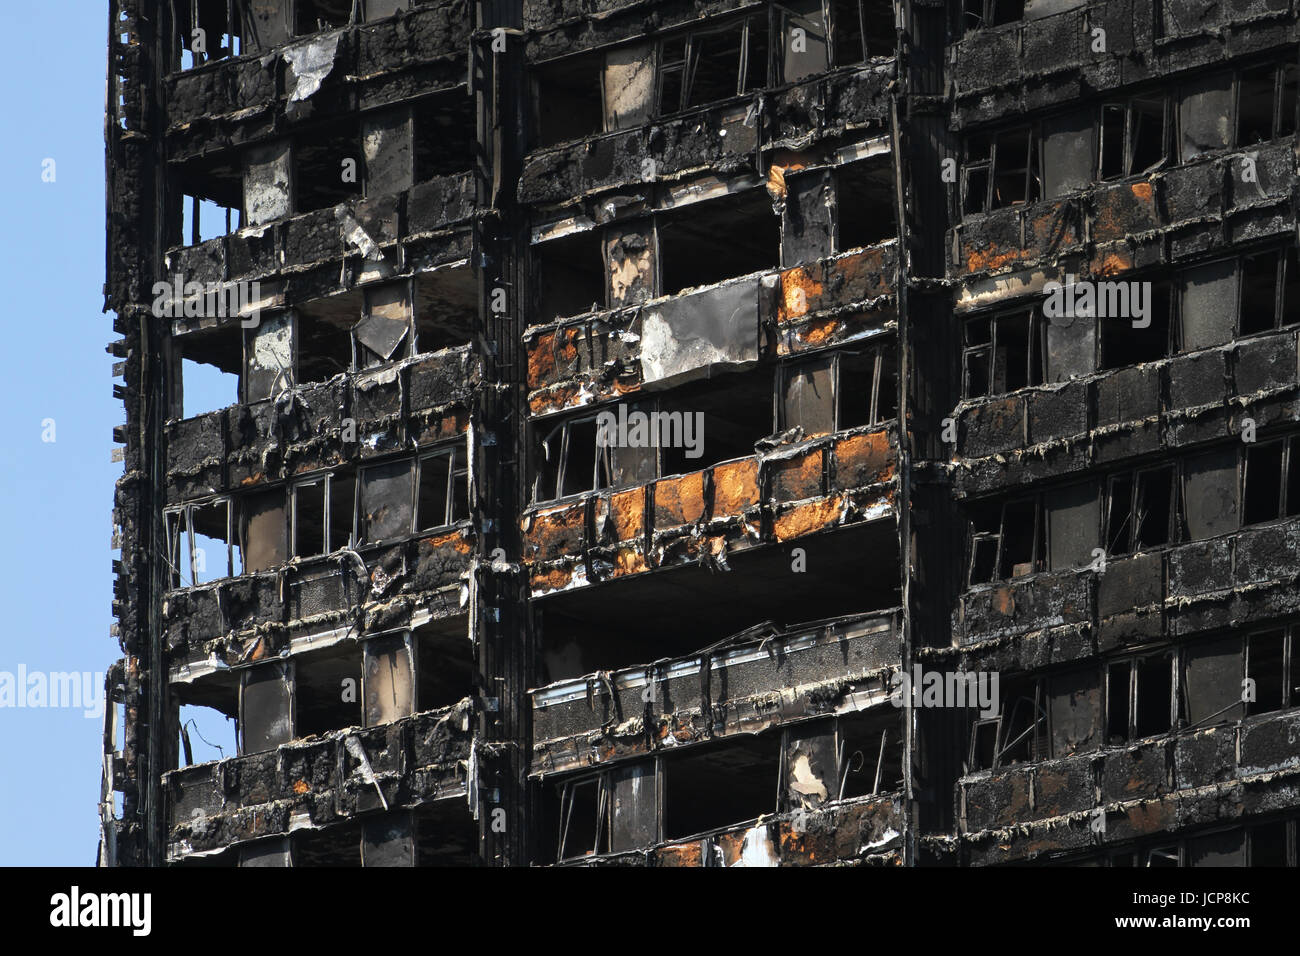 London, UK. 16th June 2017. Burned out cladding seen on the charred remains of the 24-storey block Grenfell tower - Stock Image